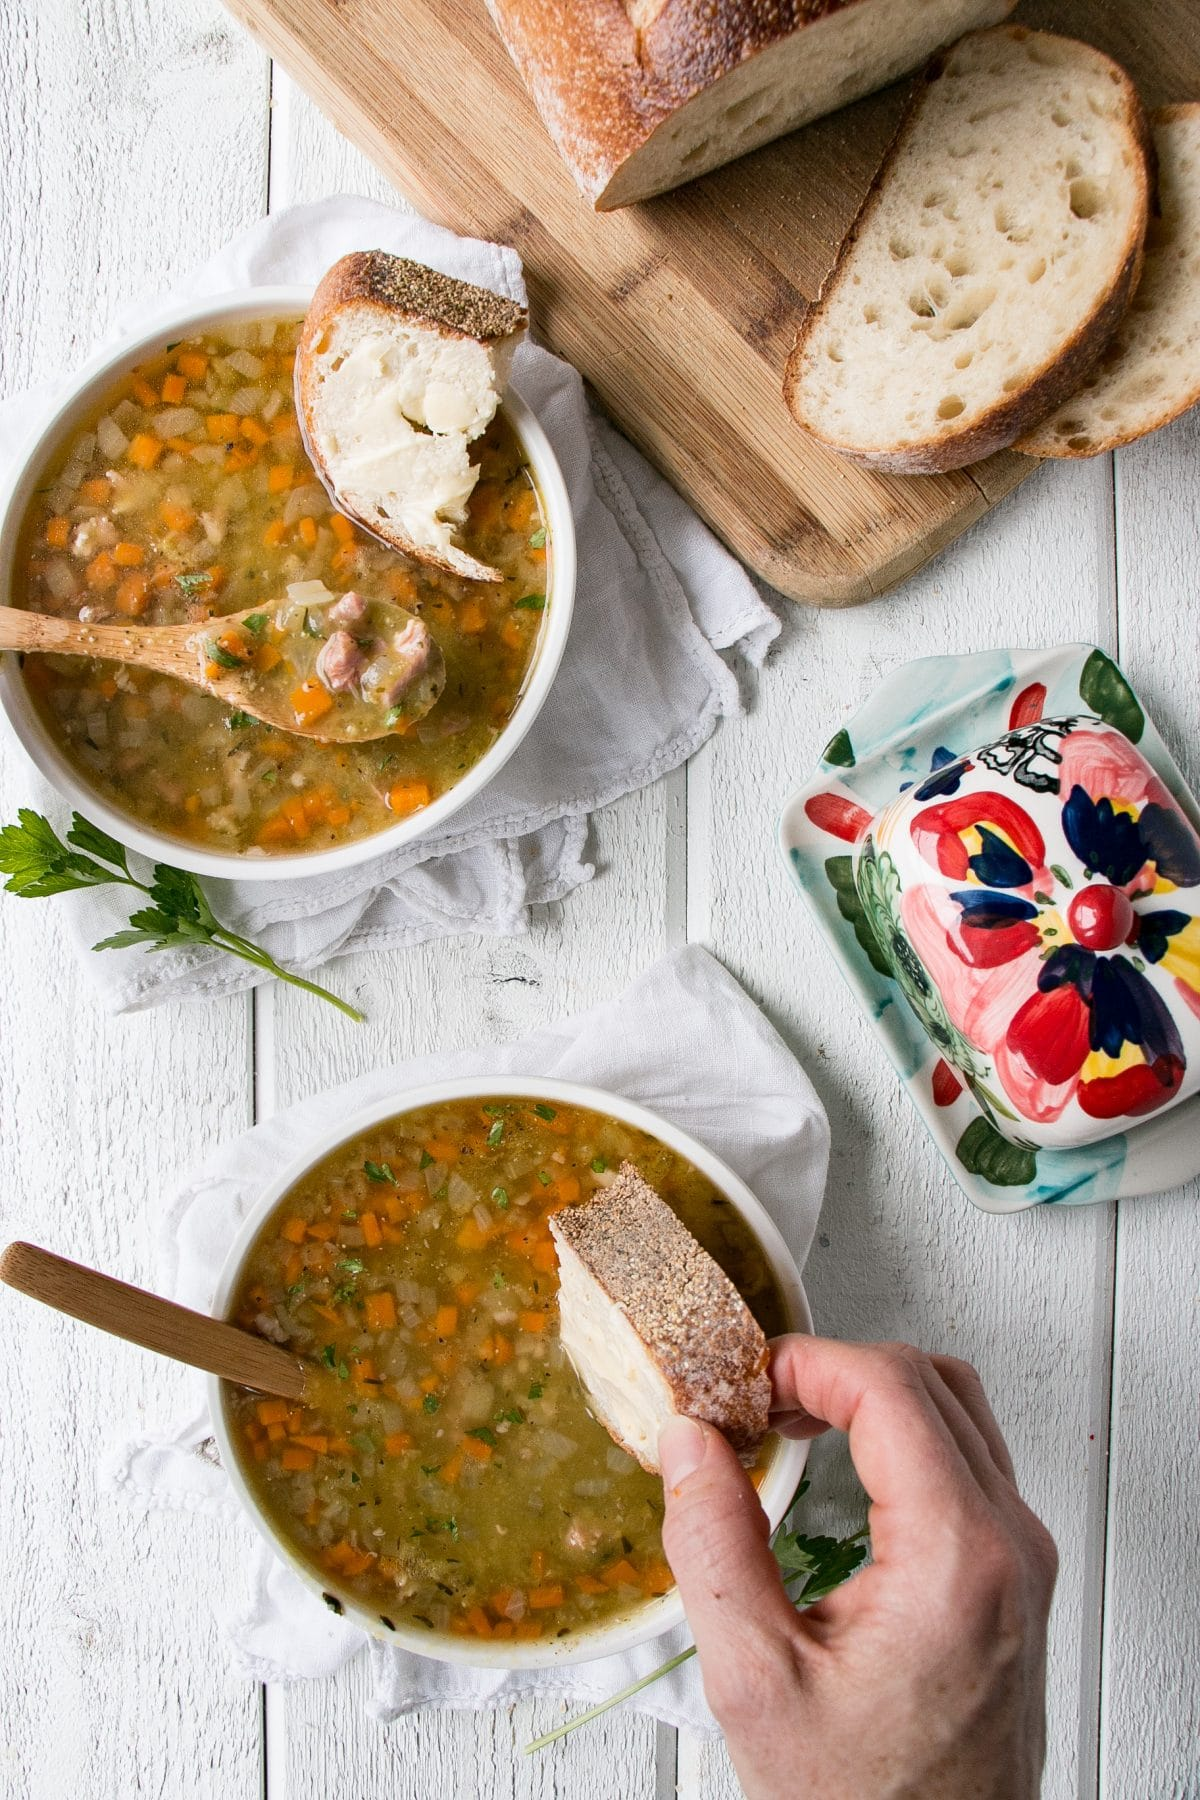 Instant Pot Split Pea Soup is made in under 35 minutes and is filled with vegetables and healthy split peas. #instantpot #soup